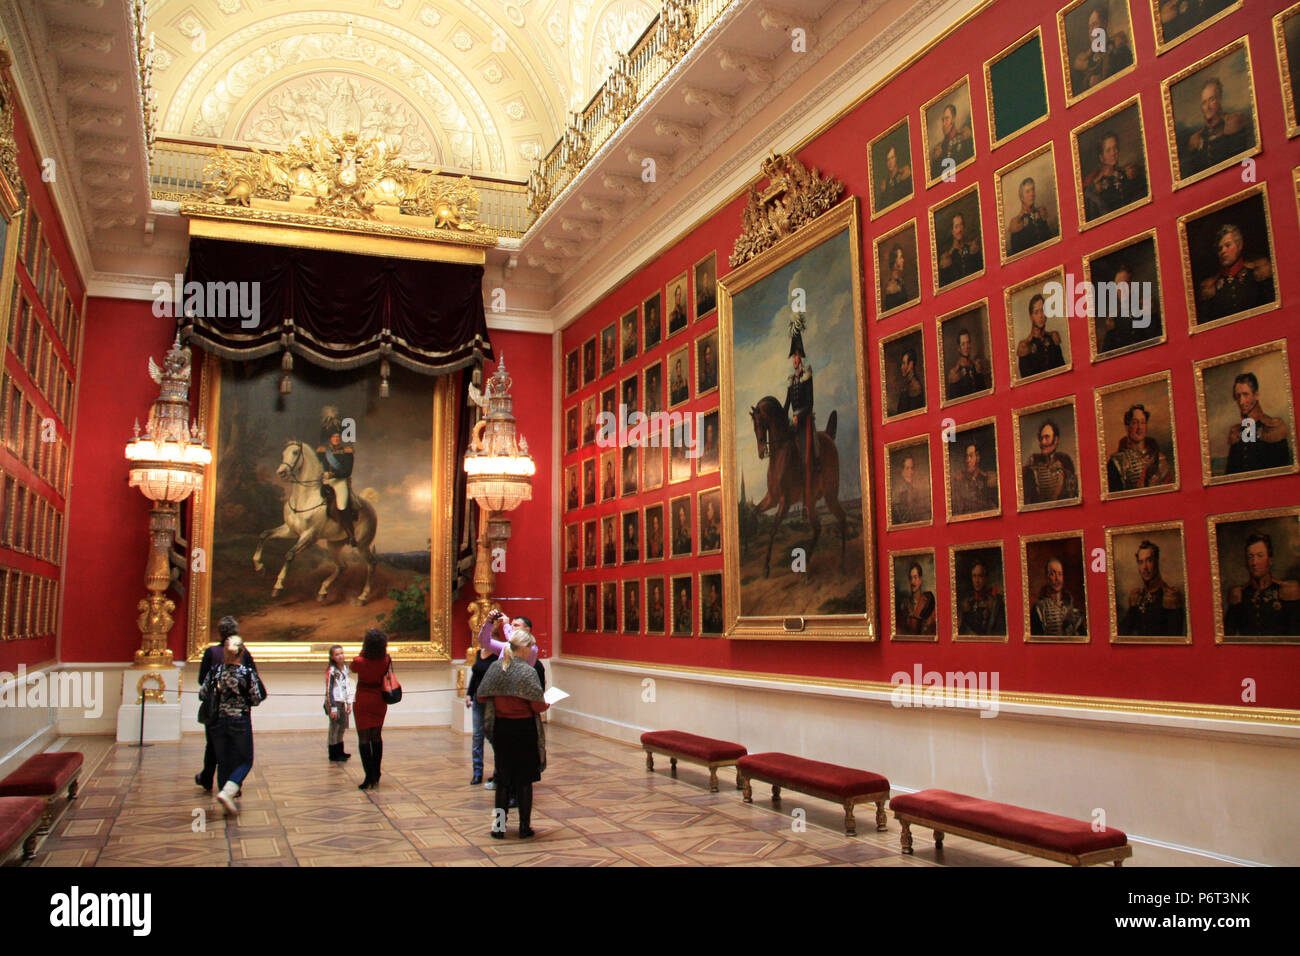 People looking at artworks inside the Hall of Fame Portrait Gallery of the 1812 Patriotic War at the State Hermitage Museum in St. Petersburg, Russia Stock Photo